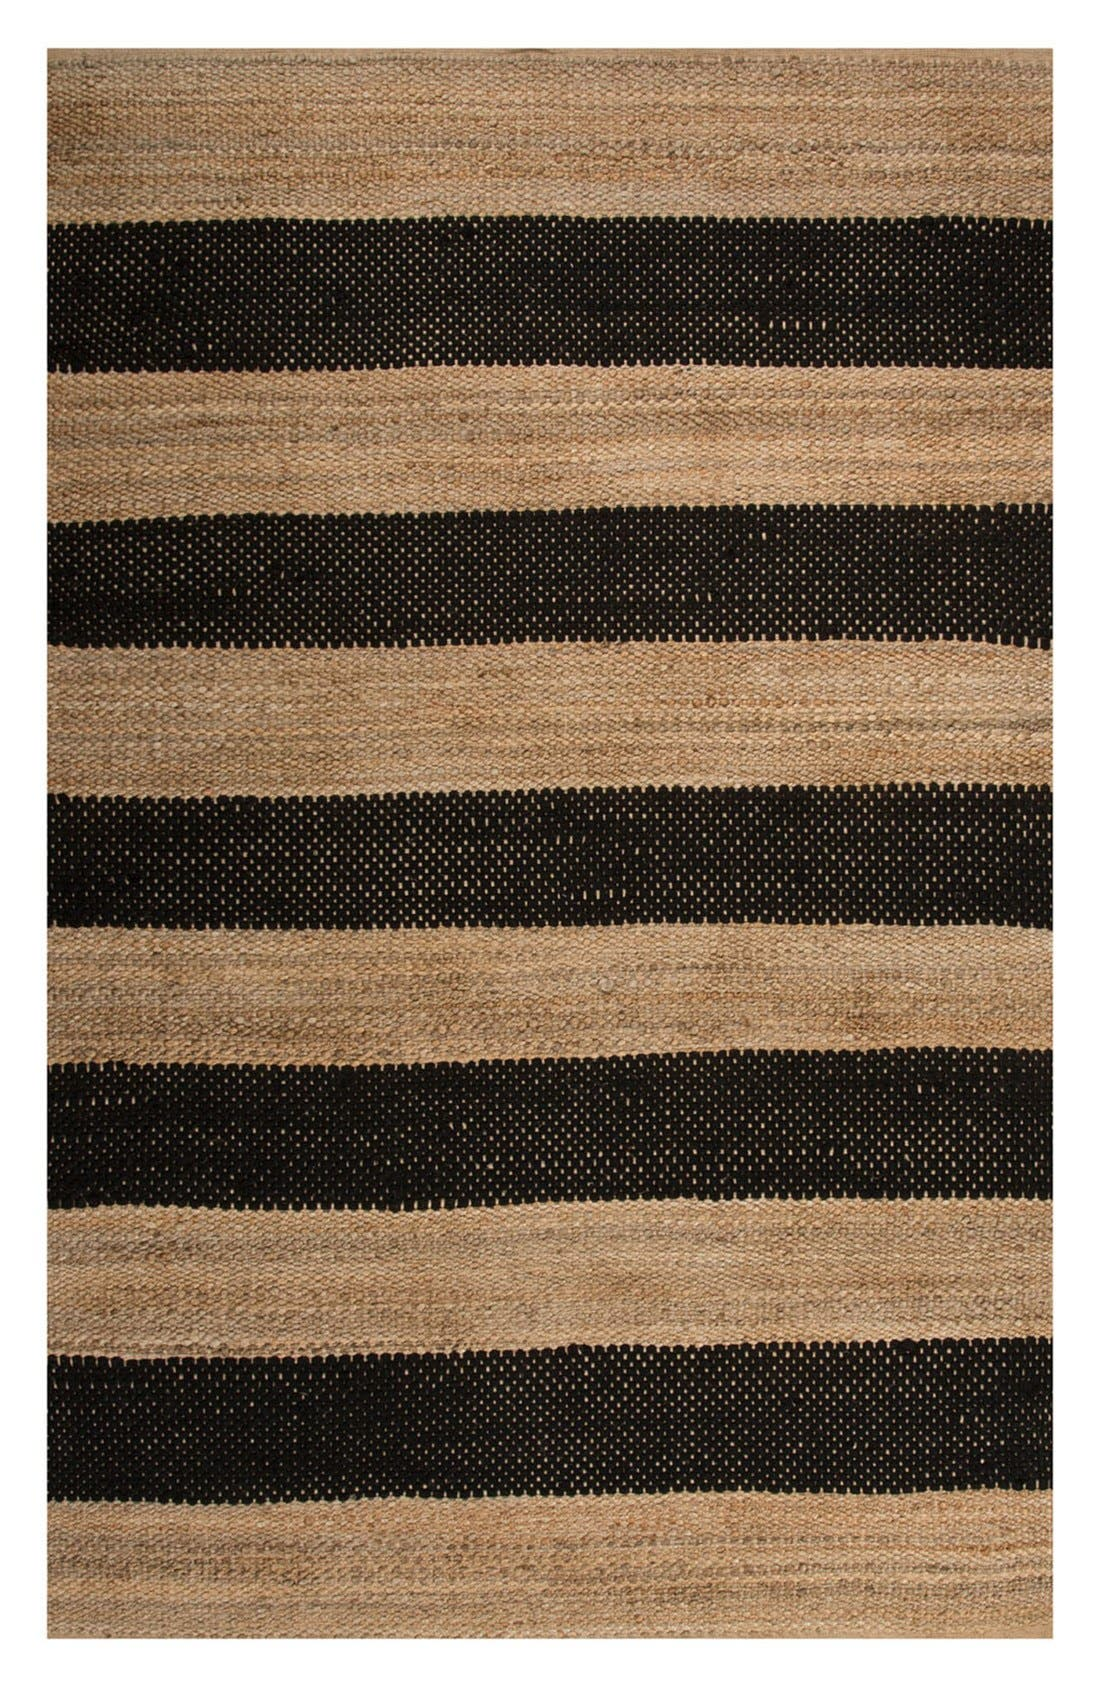 'nolita stripes' rug,                             Main thumbnail 1, color,                             001